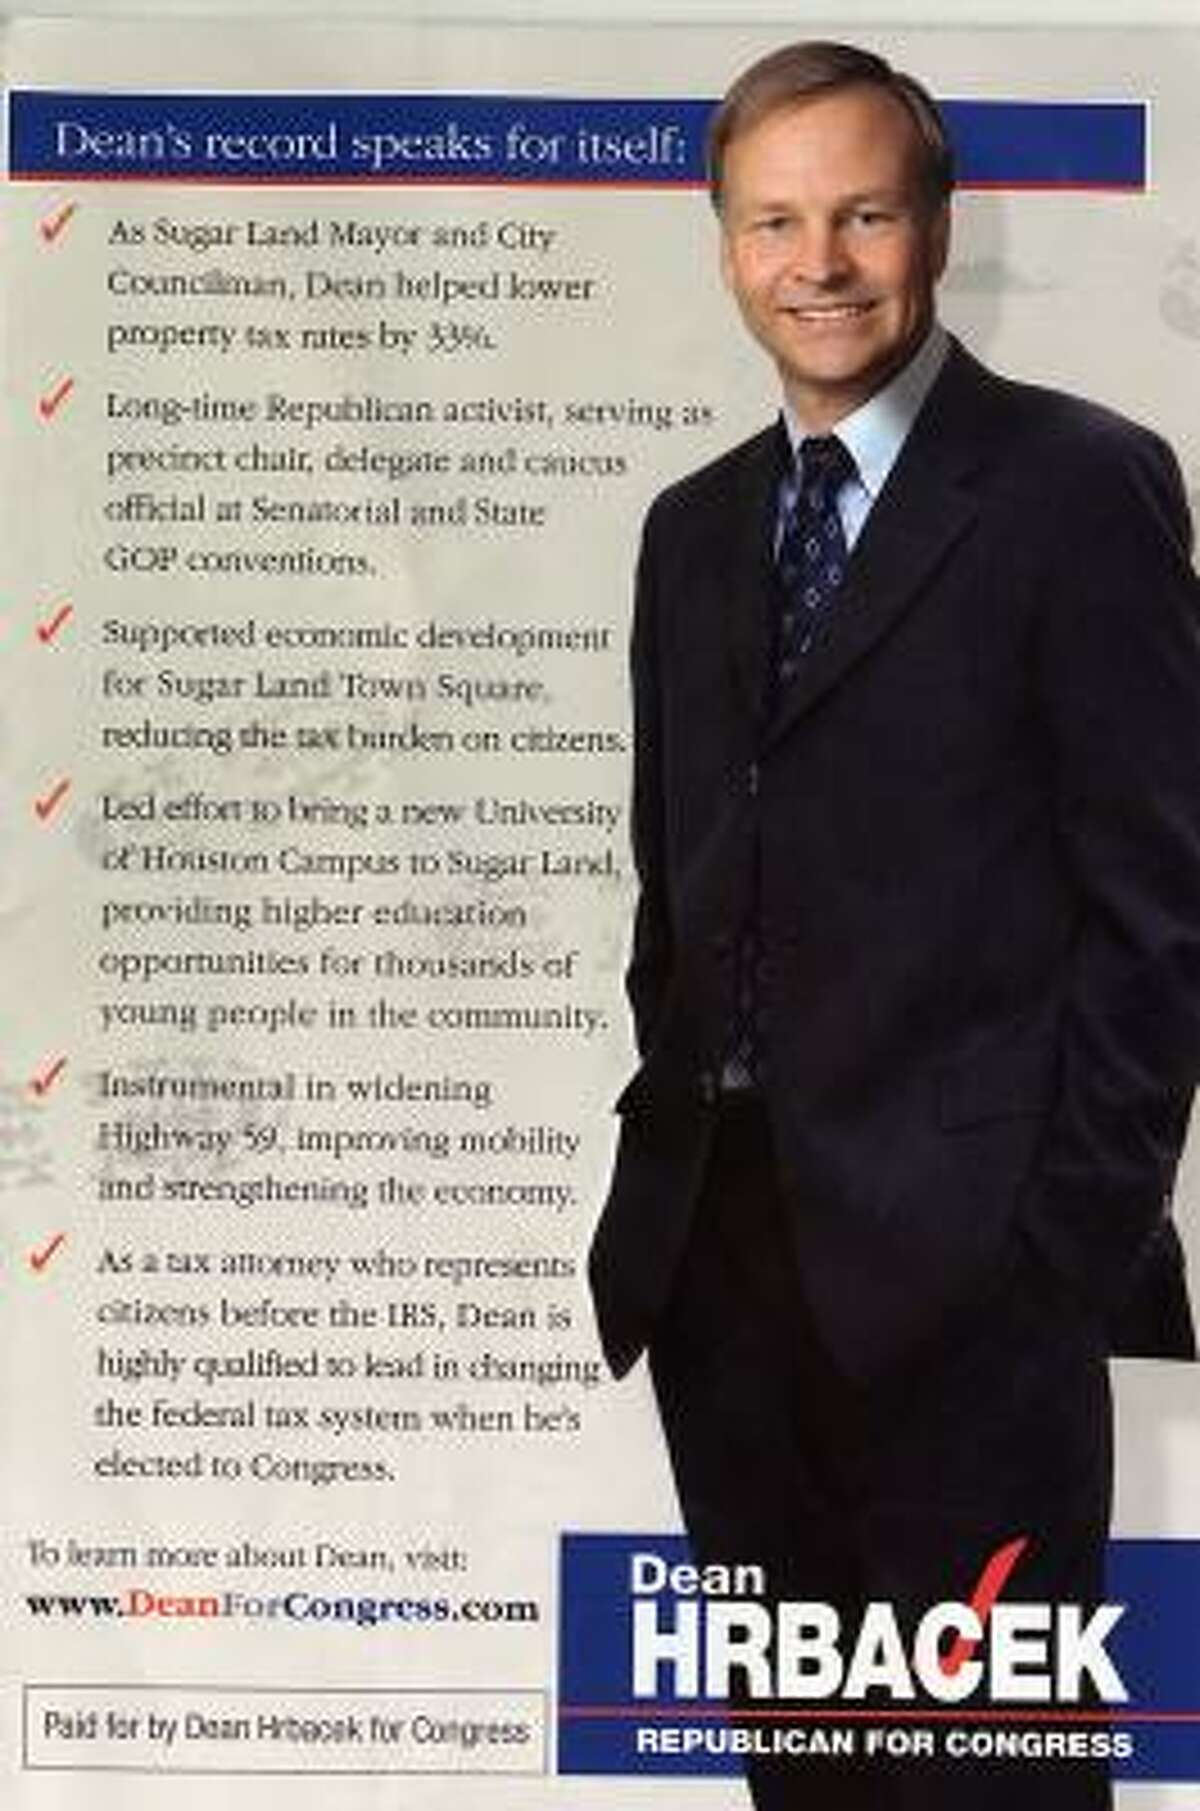 This image of U.S. House candidate and former Sugar Land mayor Dean Hrbacek is actually his head on another man's body.